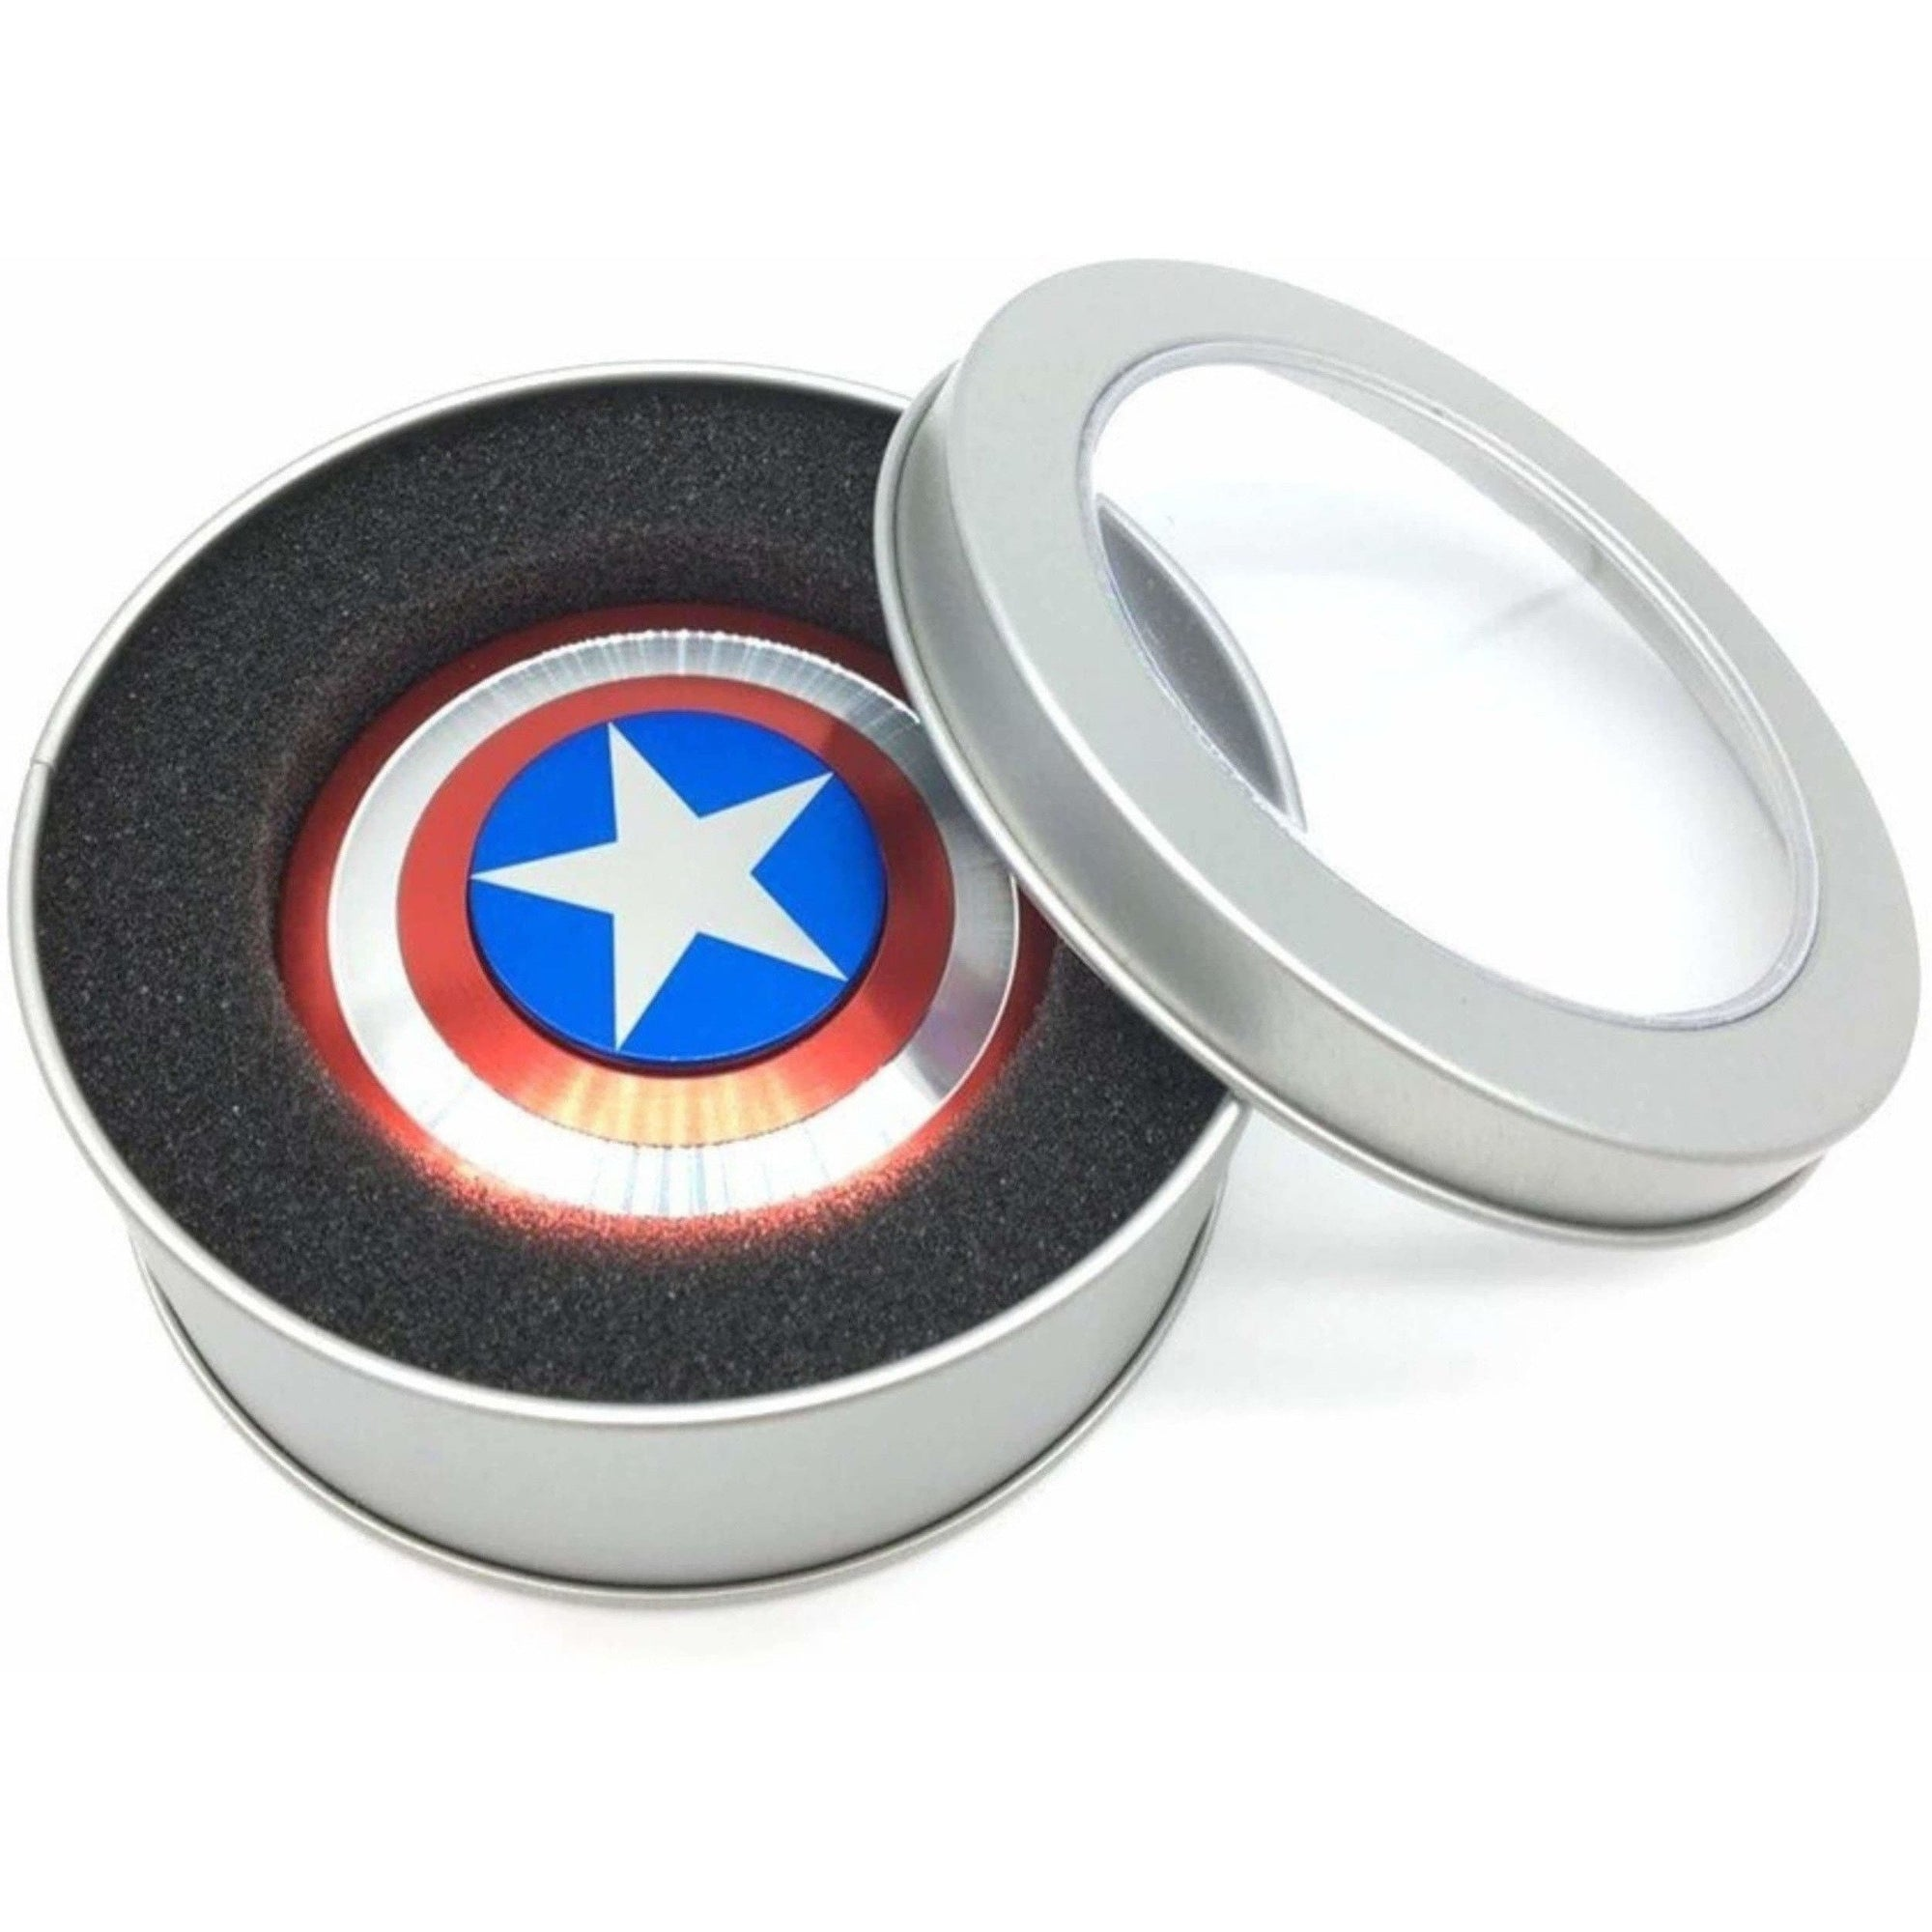 S.Blaze Amazing Metal Rounded Captain America Avenger Shield Fidget Spinner Toy for Kids